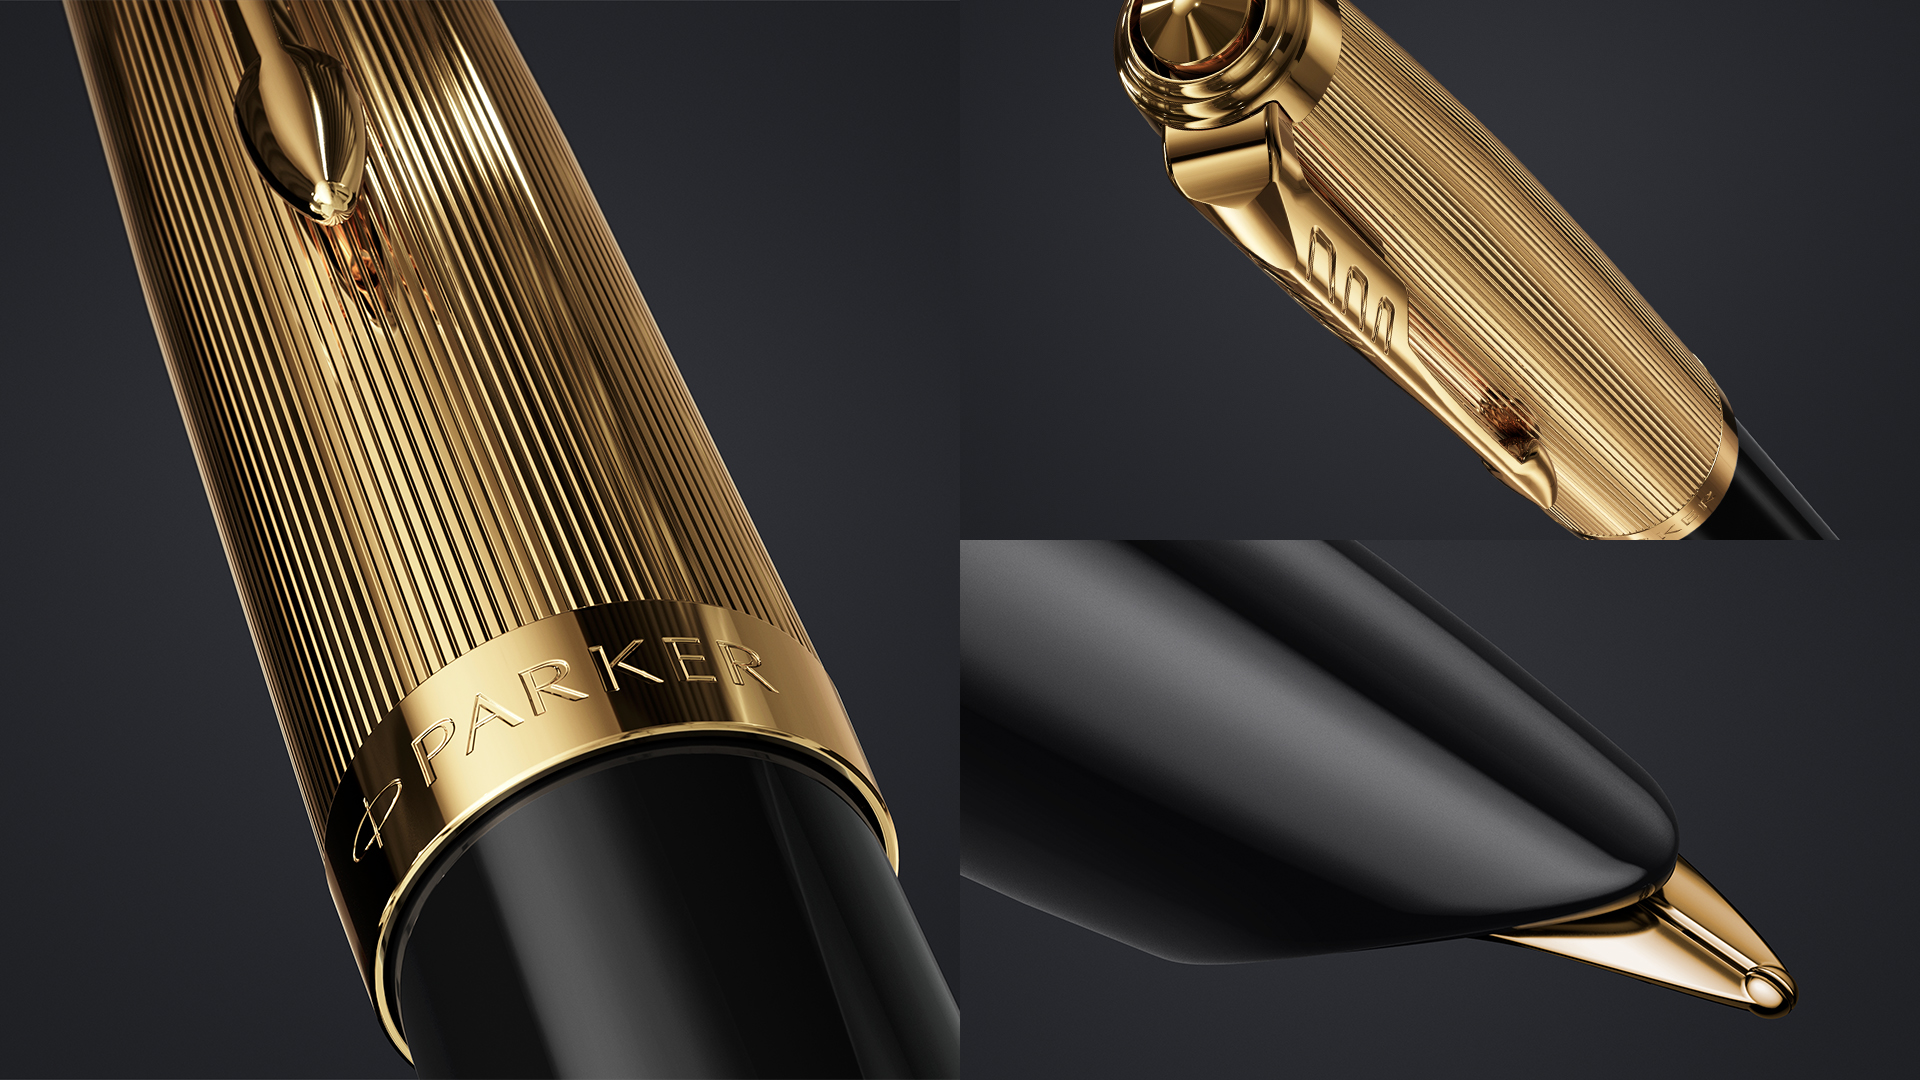 The iconic hooded nib of Parker 51 Deluxe Black